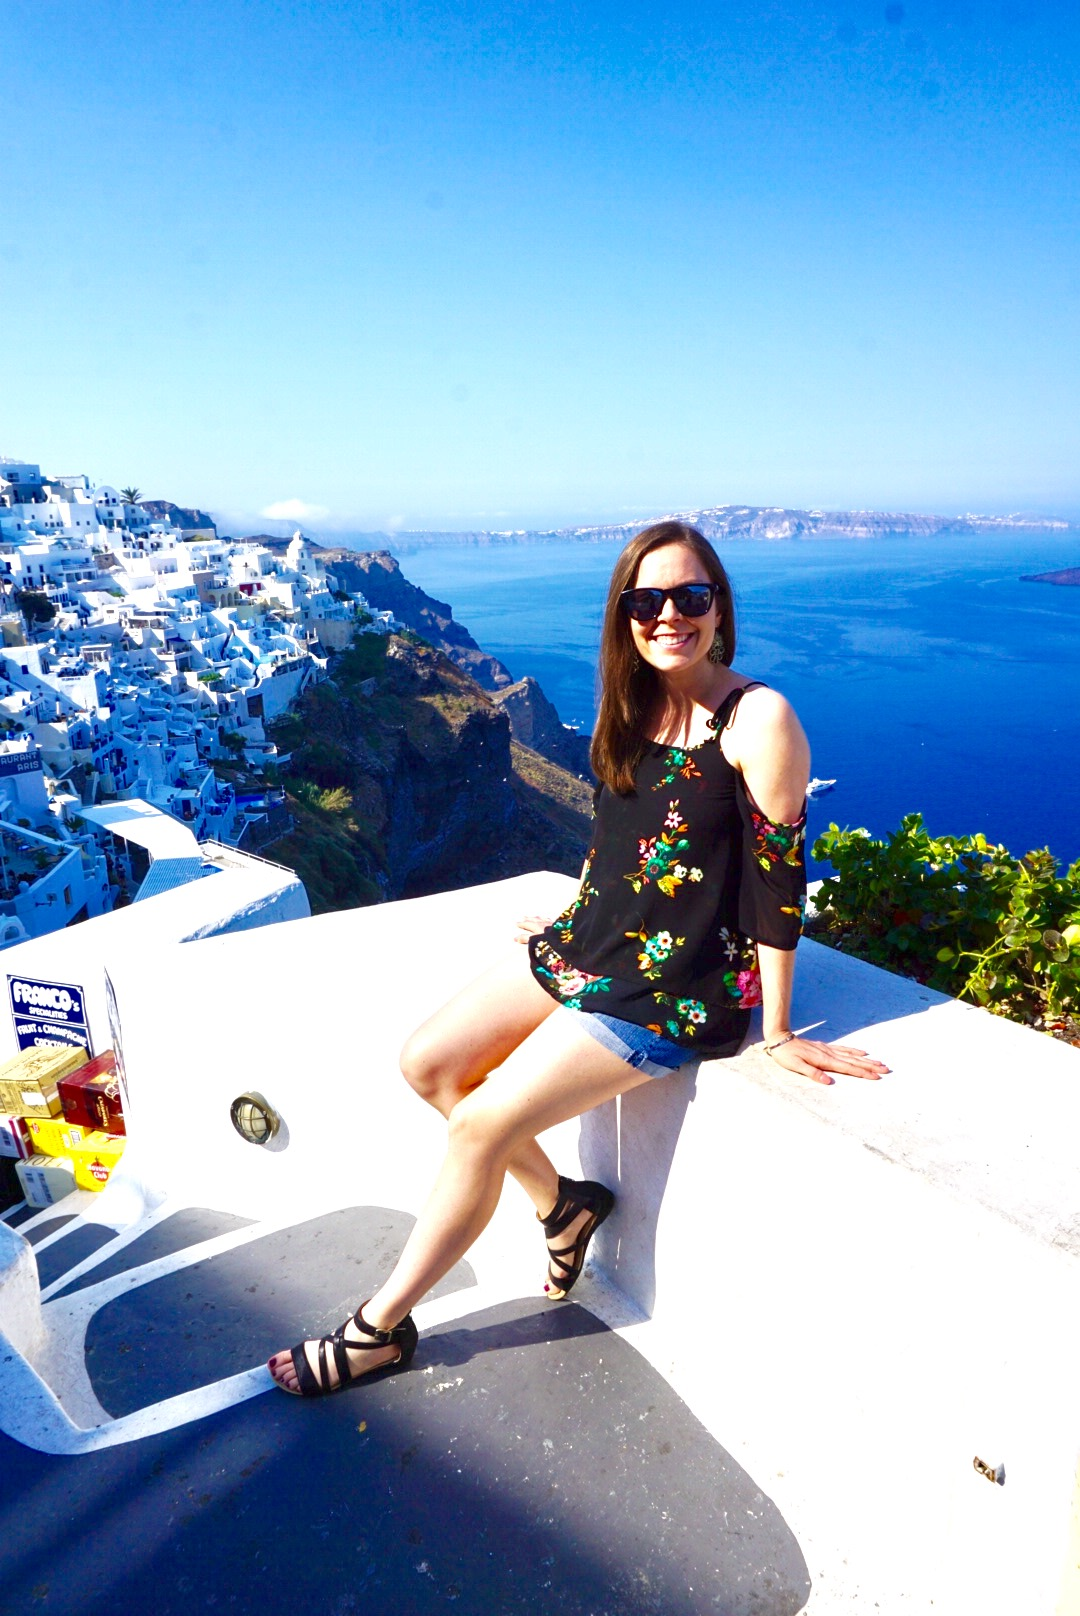 Meet Leah Deppert - Leah is the creator of the wanderlust inducing travel blog By Travel & Error where she shares all of her travel tips, tricks and inspiration from her very own getaways. Leah also happens to be one of the most authentic individuals I've ever come across. This week, Leah will be sharing her easy 4 step process on how-to map out your travel plans for the back half of 2019.